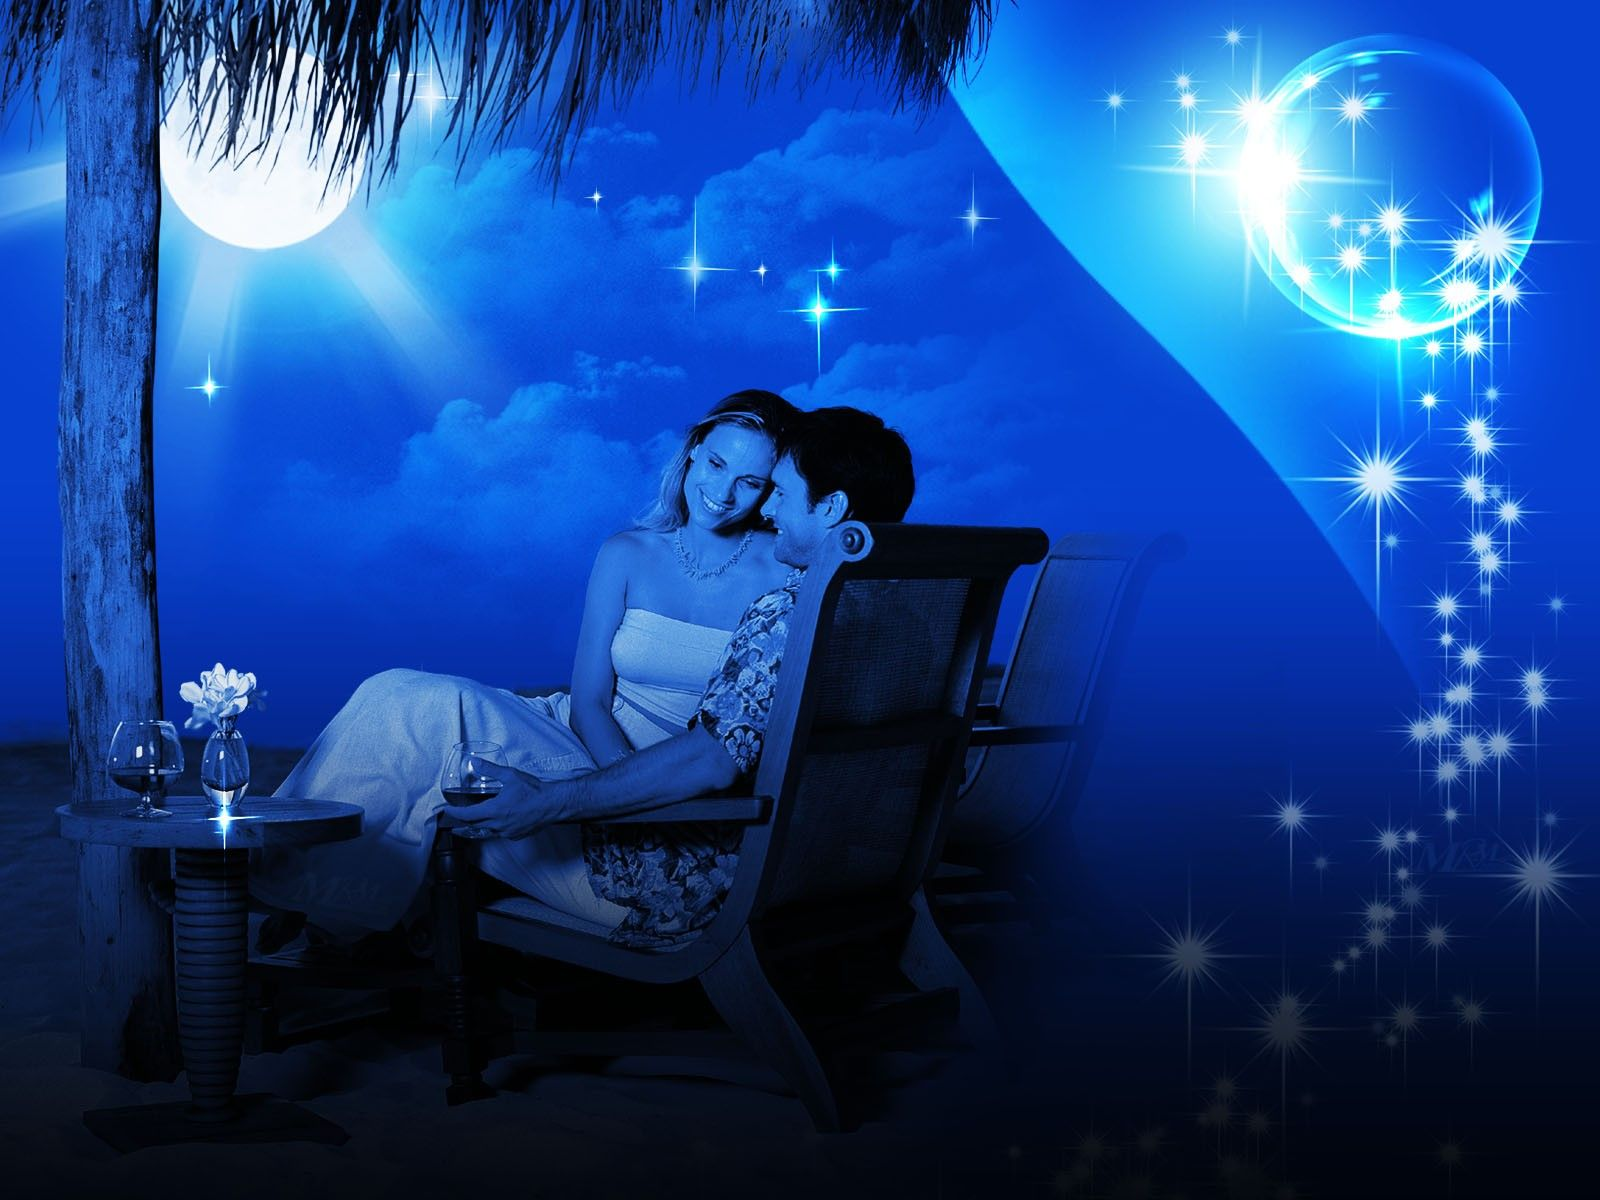 Wallpaper download cute lovers - Find This Pin And More On Love Cute And Lovely Romantic Love Wallpapers